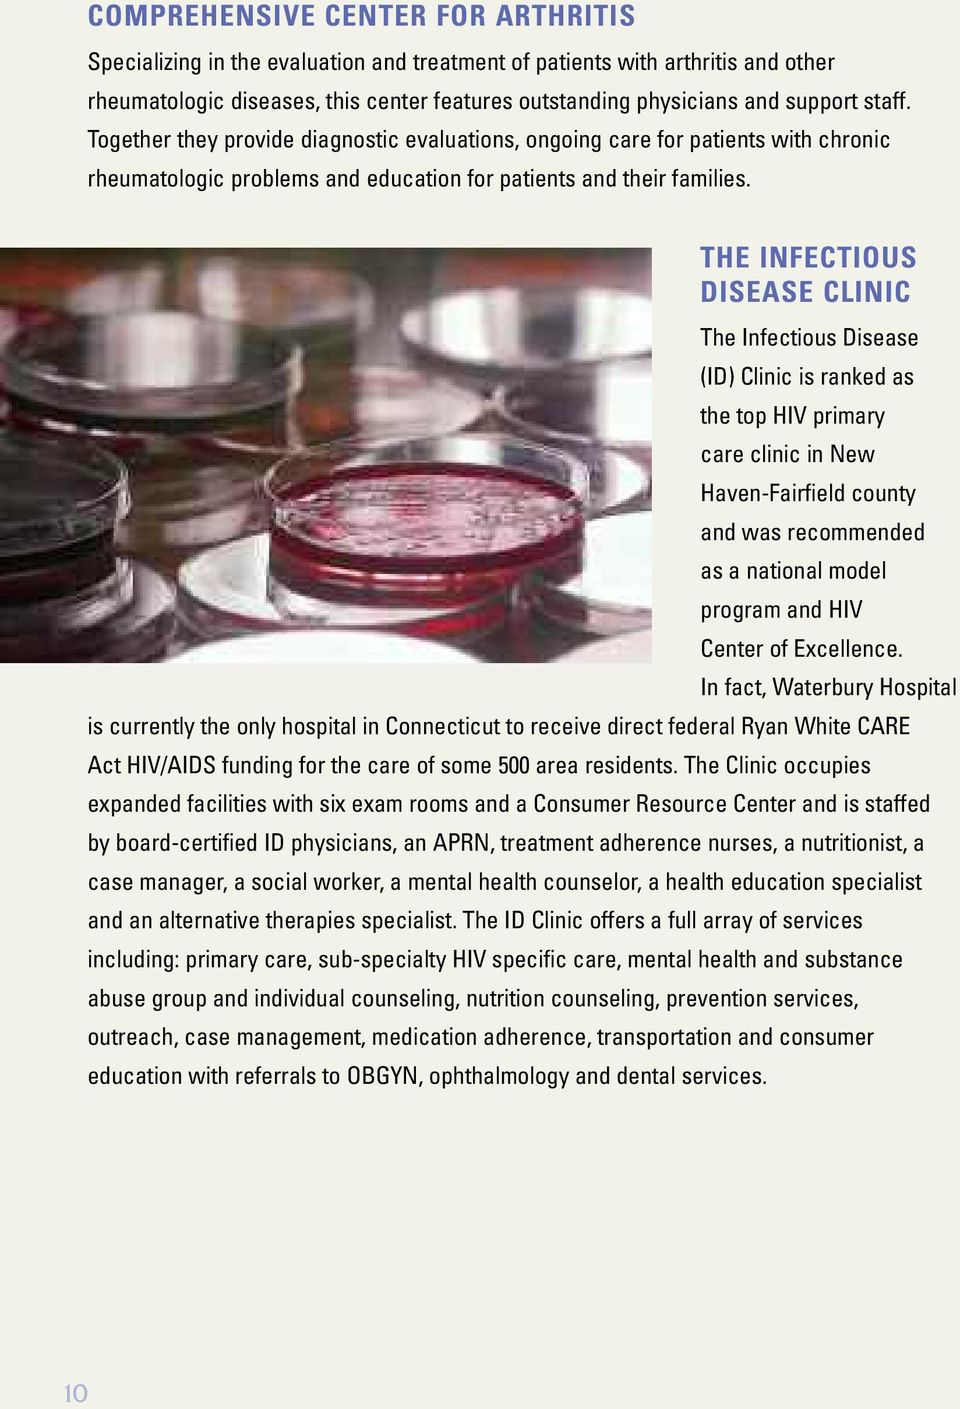 THE INFECTIOUS DISEASE CLINIC The Infectious Disease (ID) Clinic is ranked as the top HIV primary care clinic in New Haven-Fairfield county and was recommended as a national model program and HIV